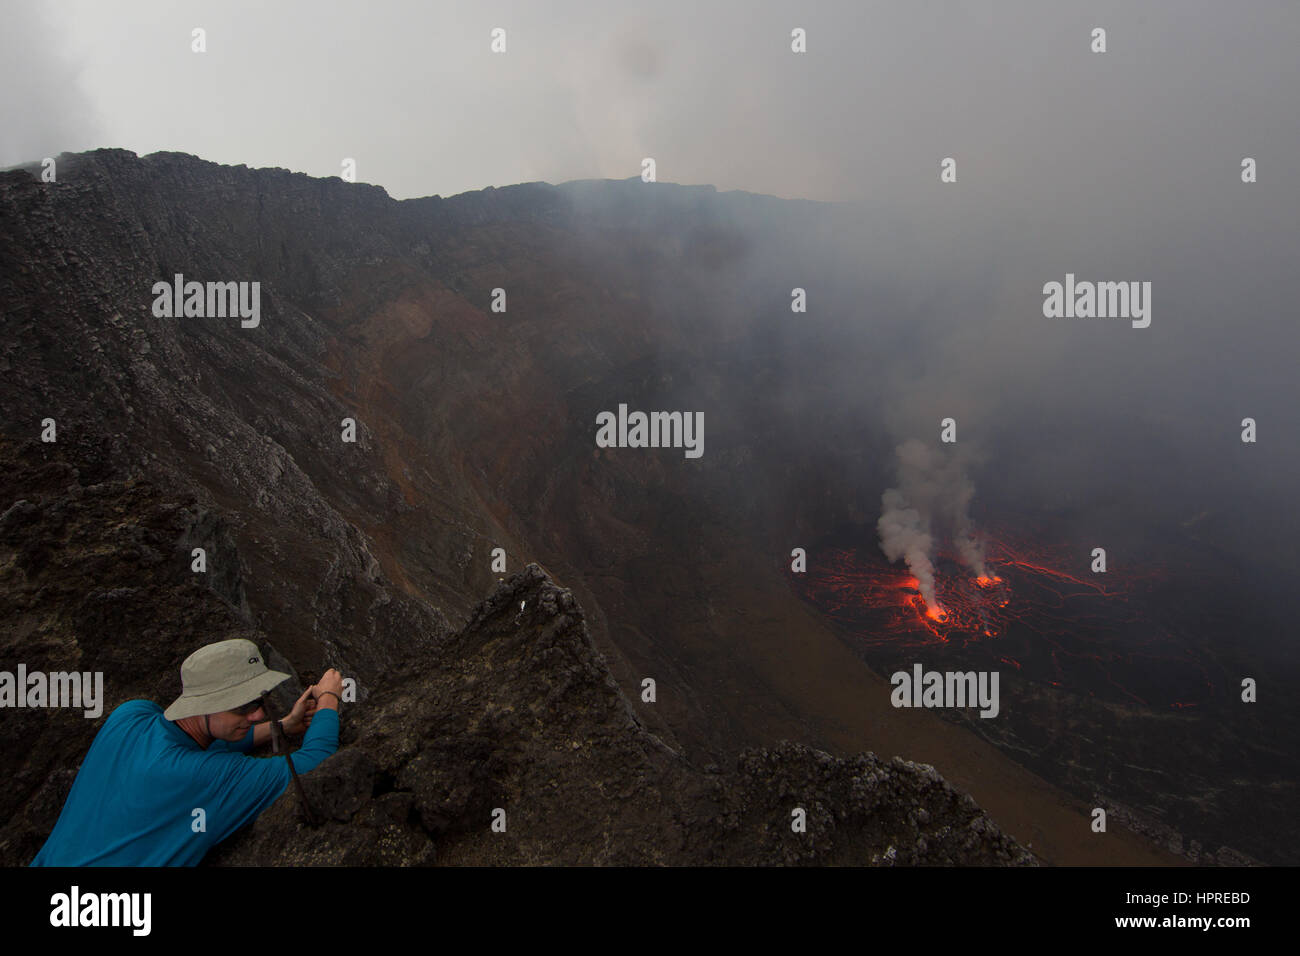 A tourist looks over the crater of Nyiragongo Volcano in the Virunga National Park, DRC to the active lava lake - Stock Image